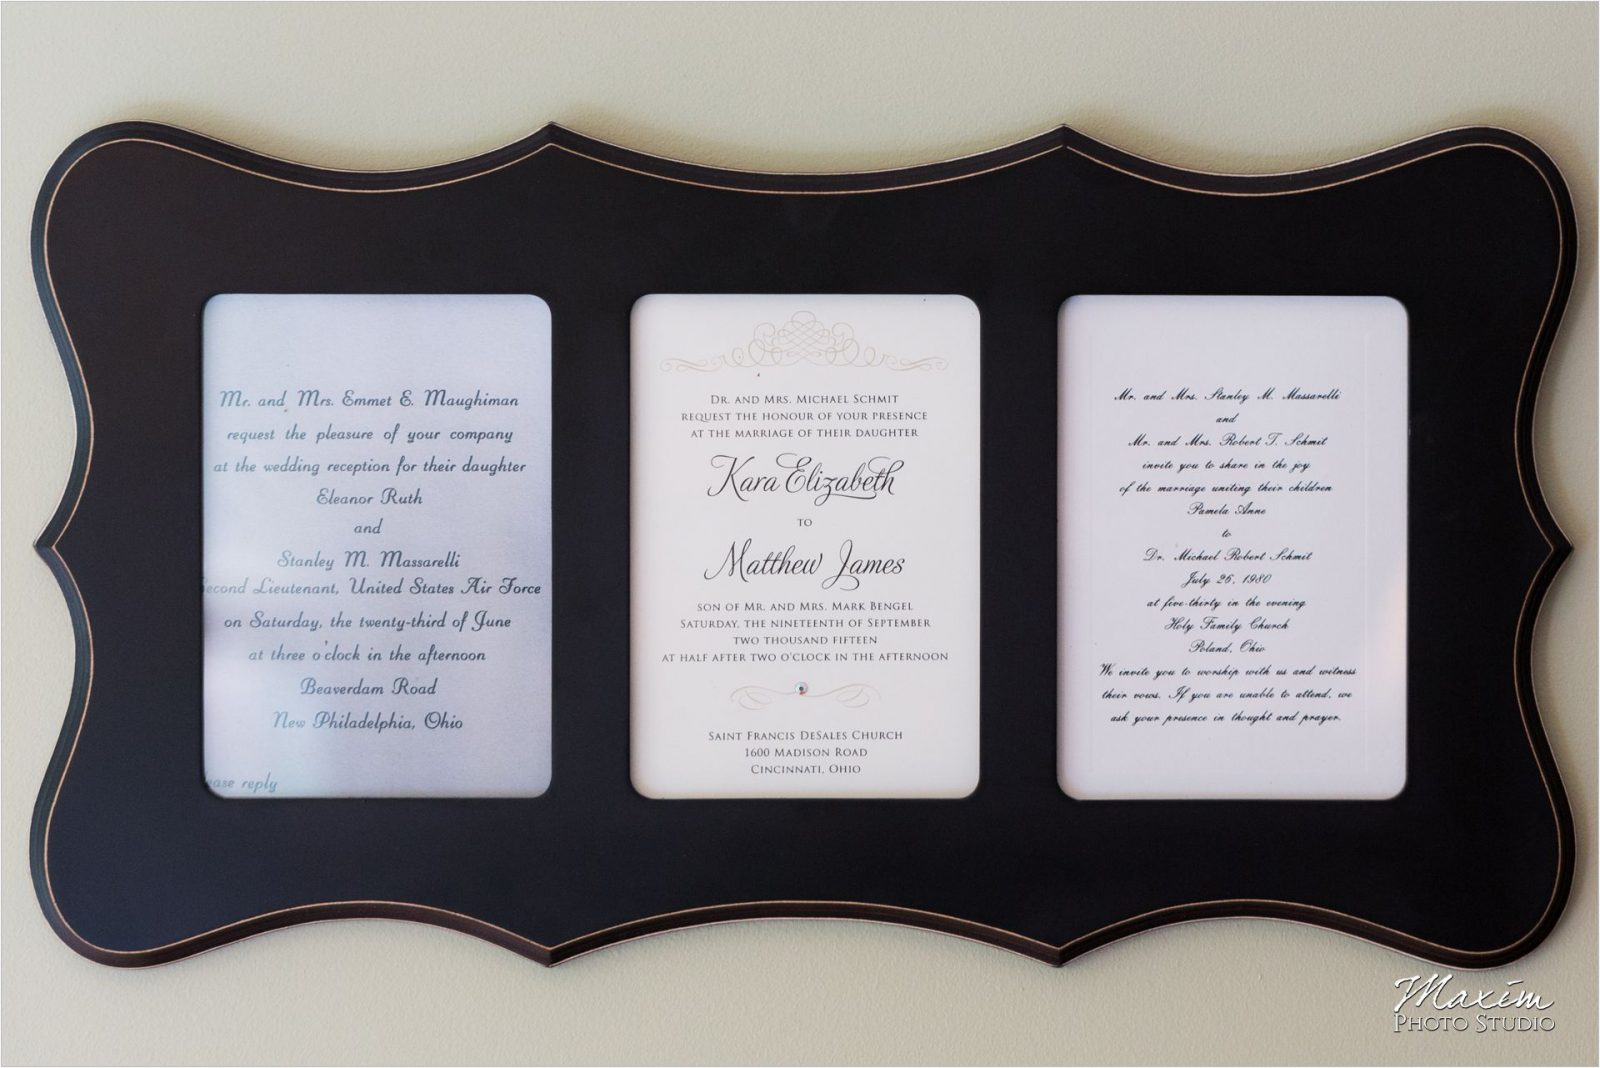 Three Generations of wedding announcements